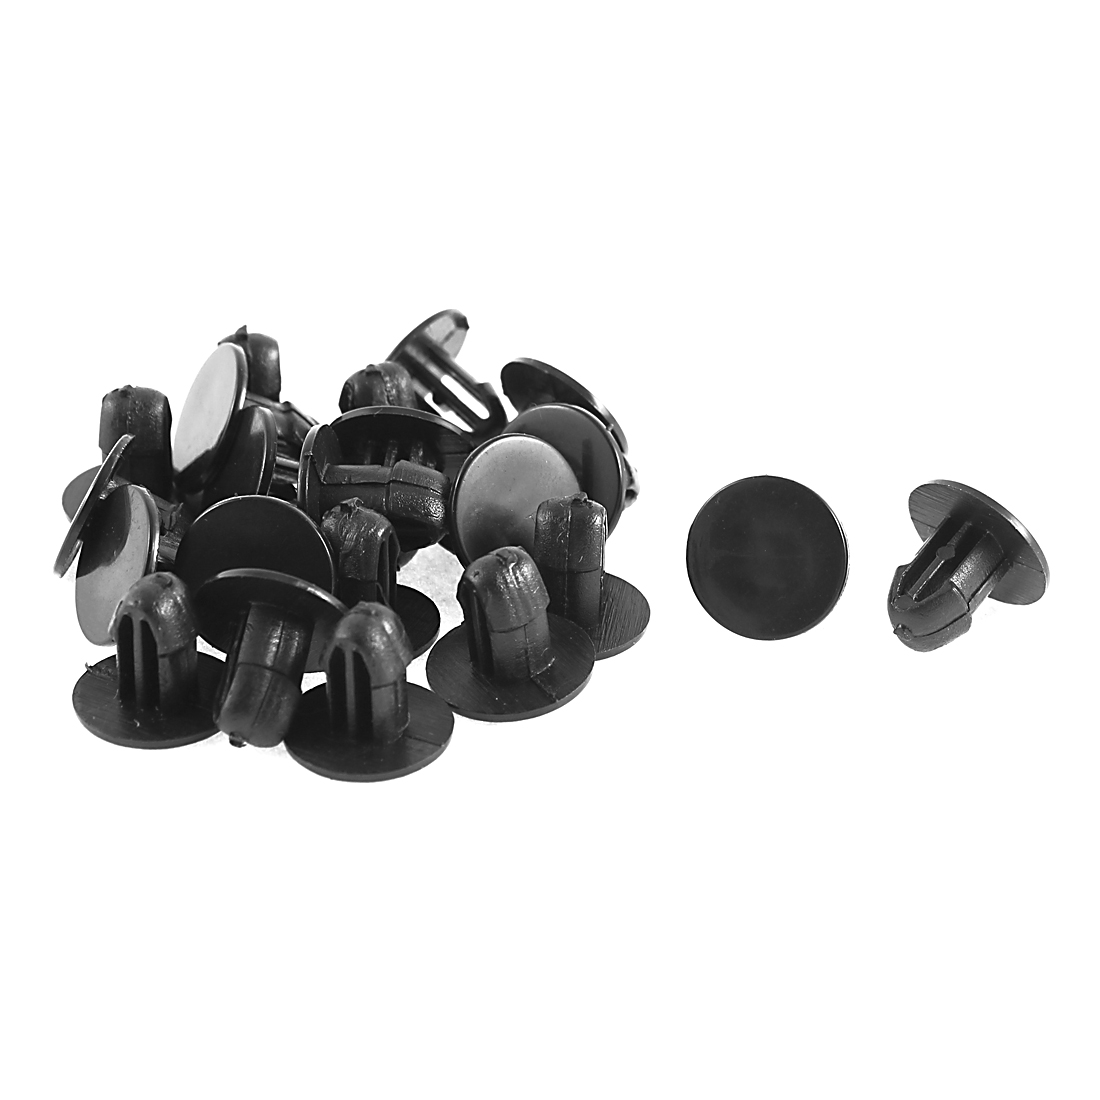 22 Pcs Machine Cover Plastic Clips 6mm Hole Dia for Honda